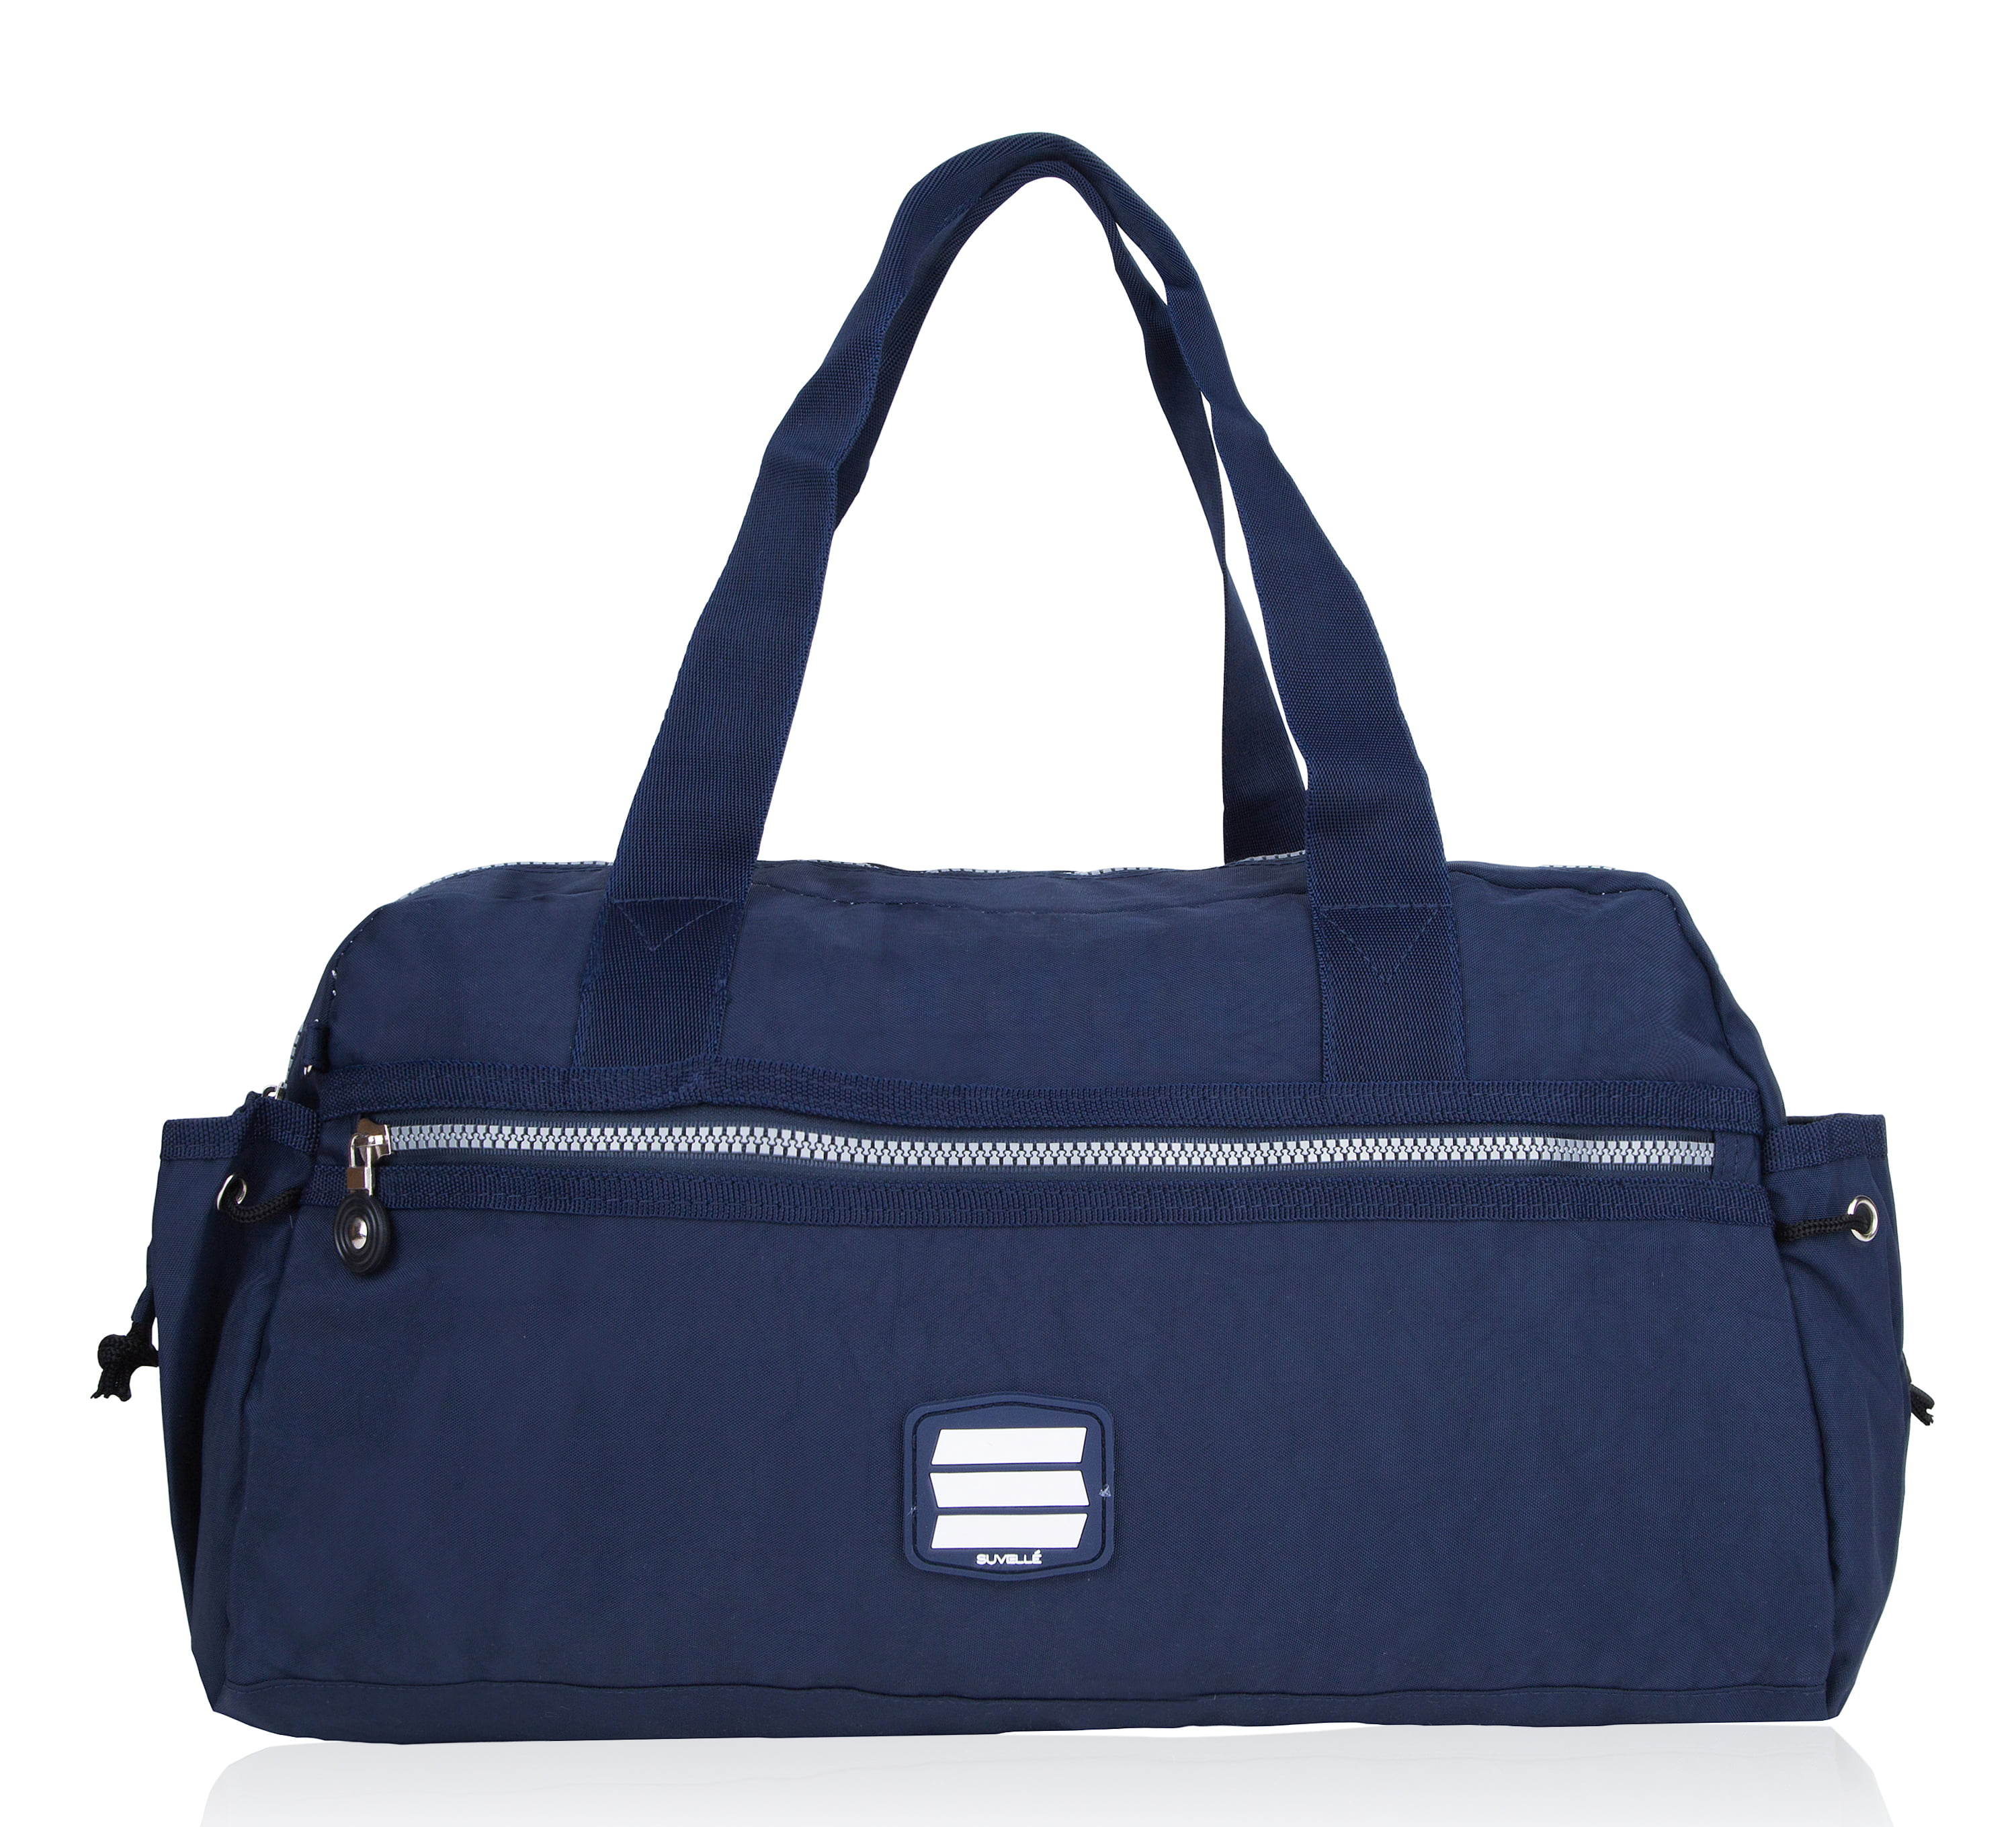 Suvelle Lightweight Small Duffle Weekend Handbag Luggage Gym Sports Travel Duffel Tote 2067 by suvelle